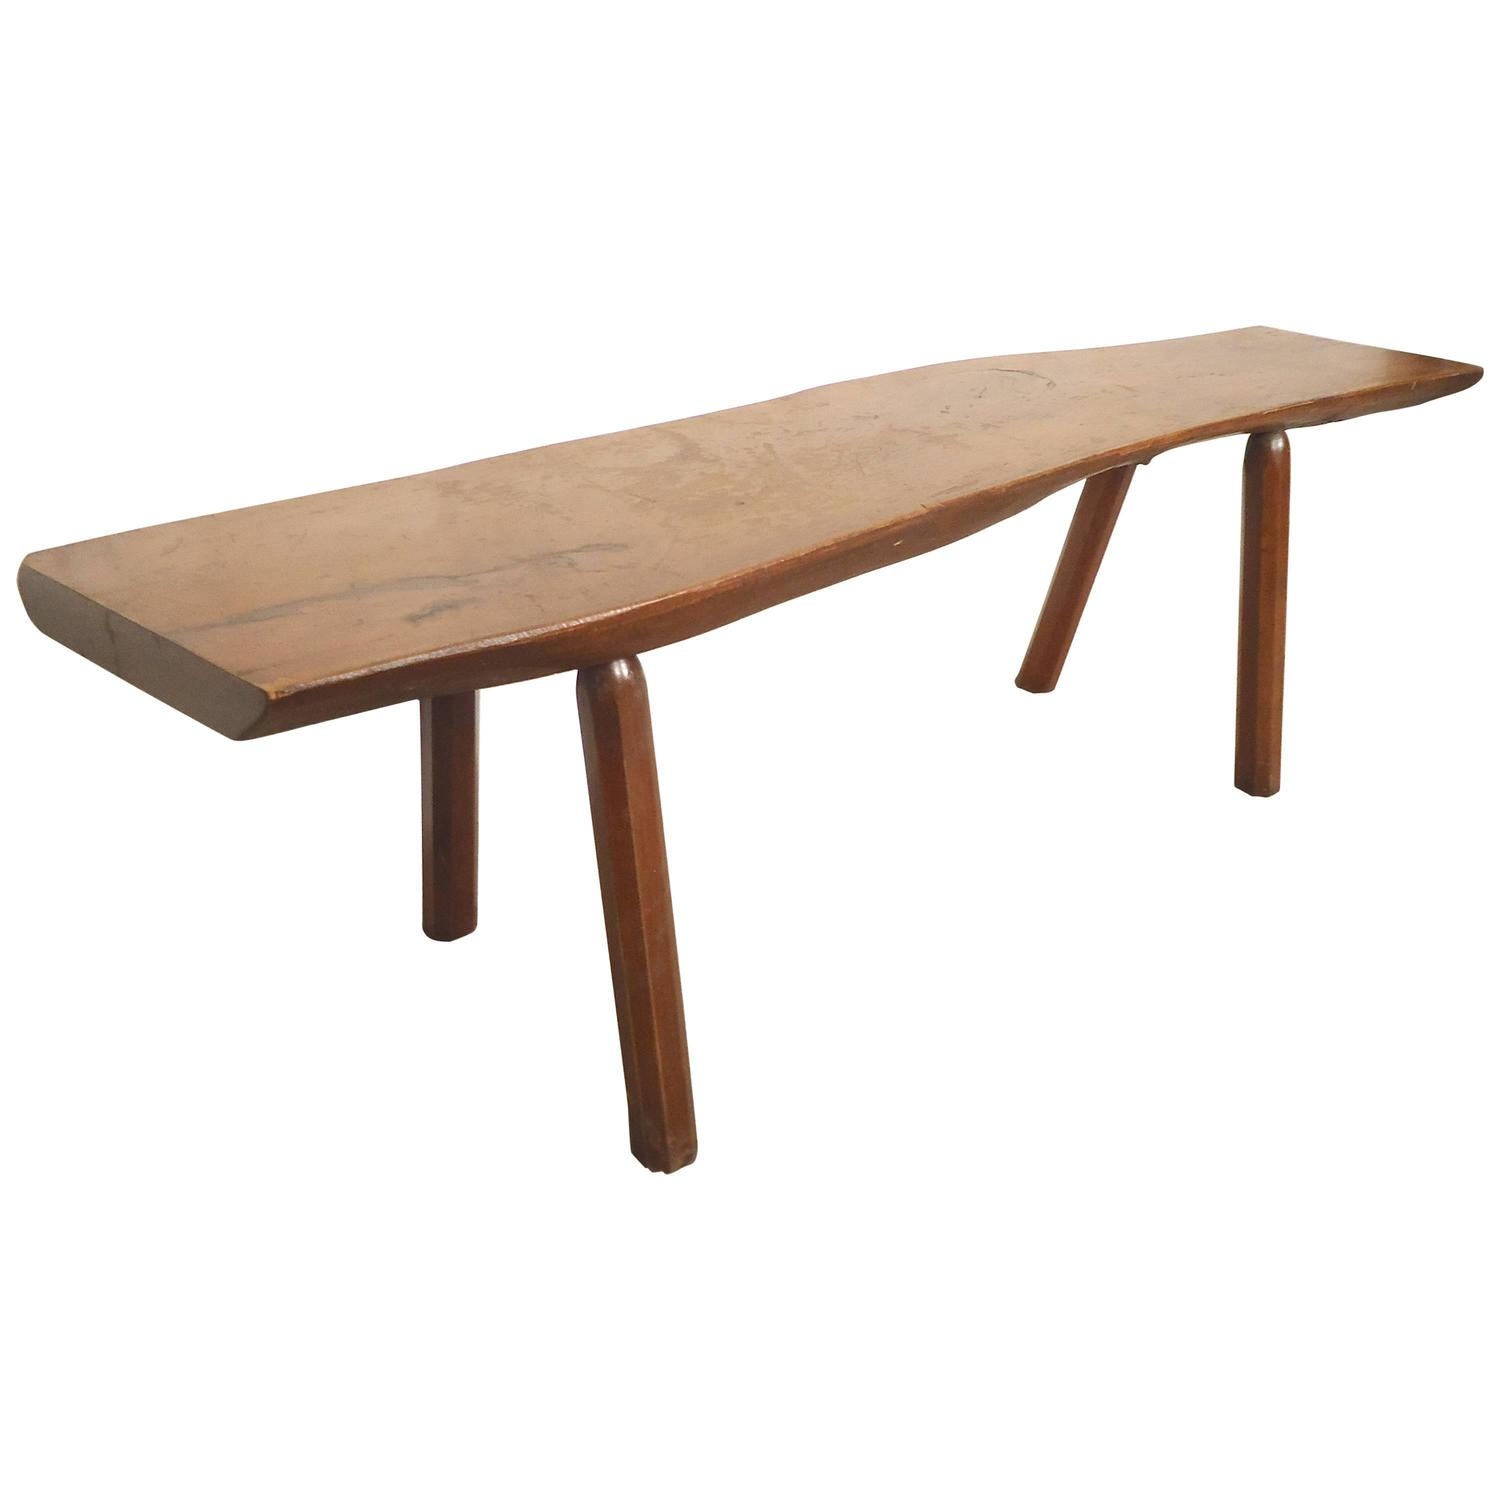 Live Edge Bench 28 Images Live Edge Wood Bench Manchester Wood Live Edge Acacia Wood Iron